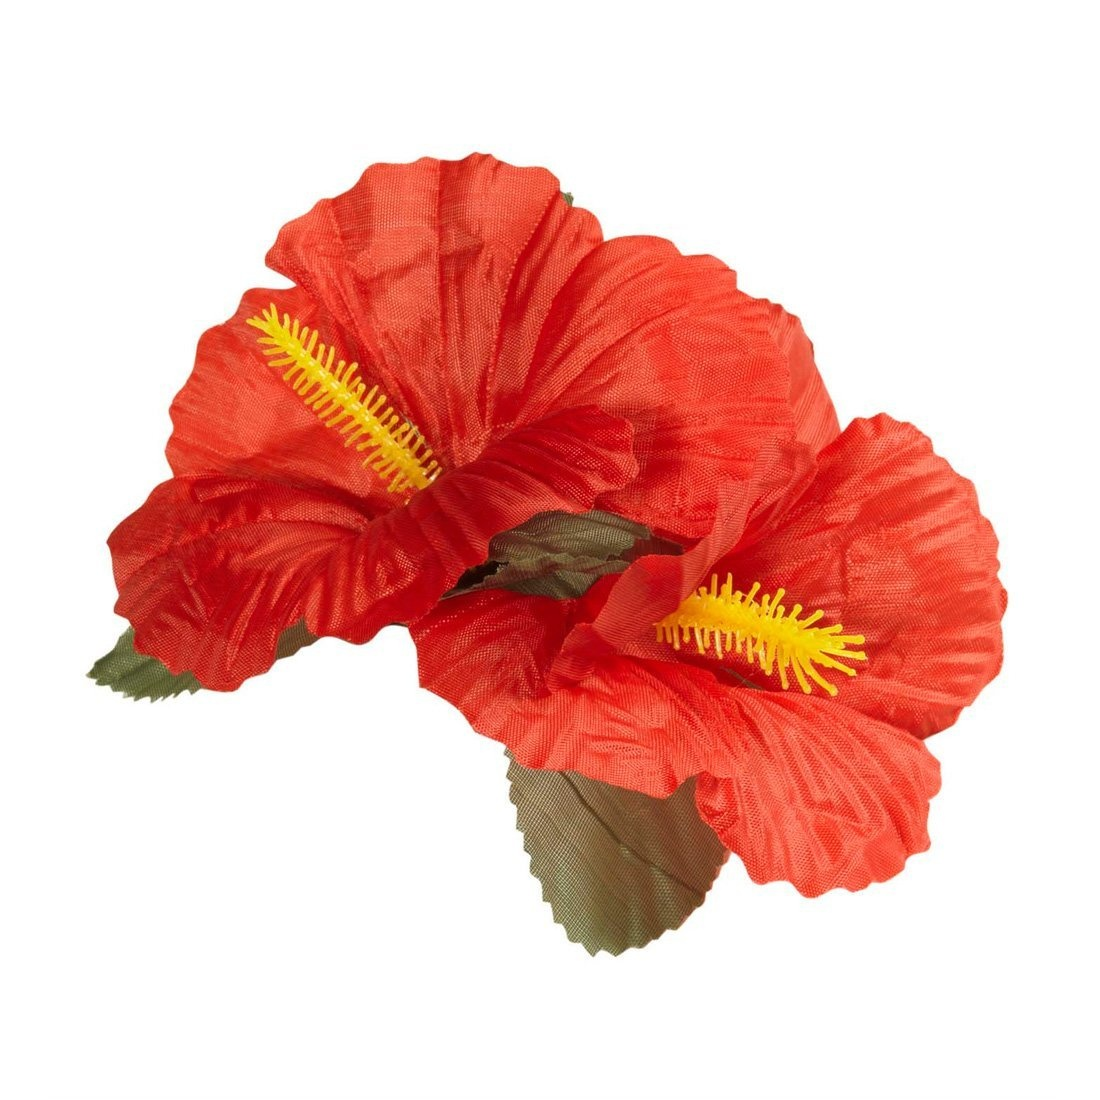 Red hibiscus flowers hair clips red hibiscus flower hair clip hawaii red hibiscus flowers hair clips red hibiscus flower hair clip hawaii flower fascinatorcorsage hair clip costume accessory by net toys shop online for izmirmasajfo